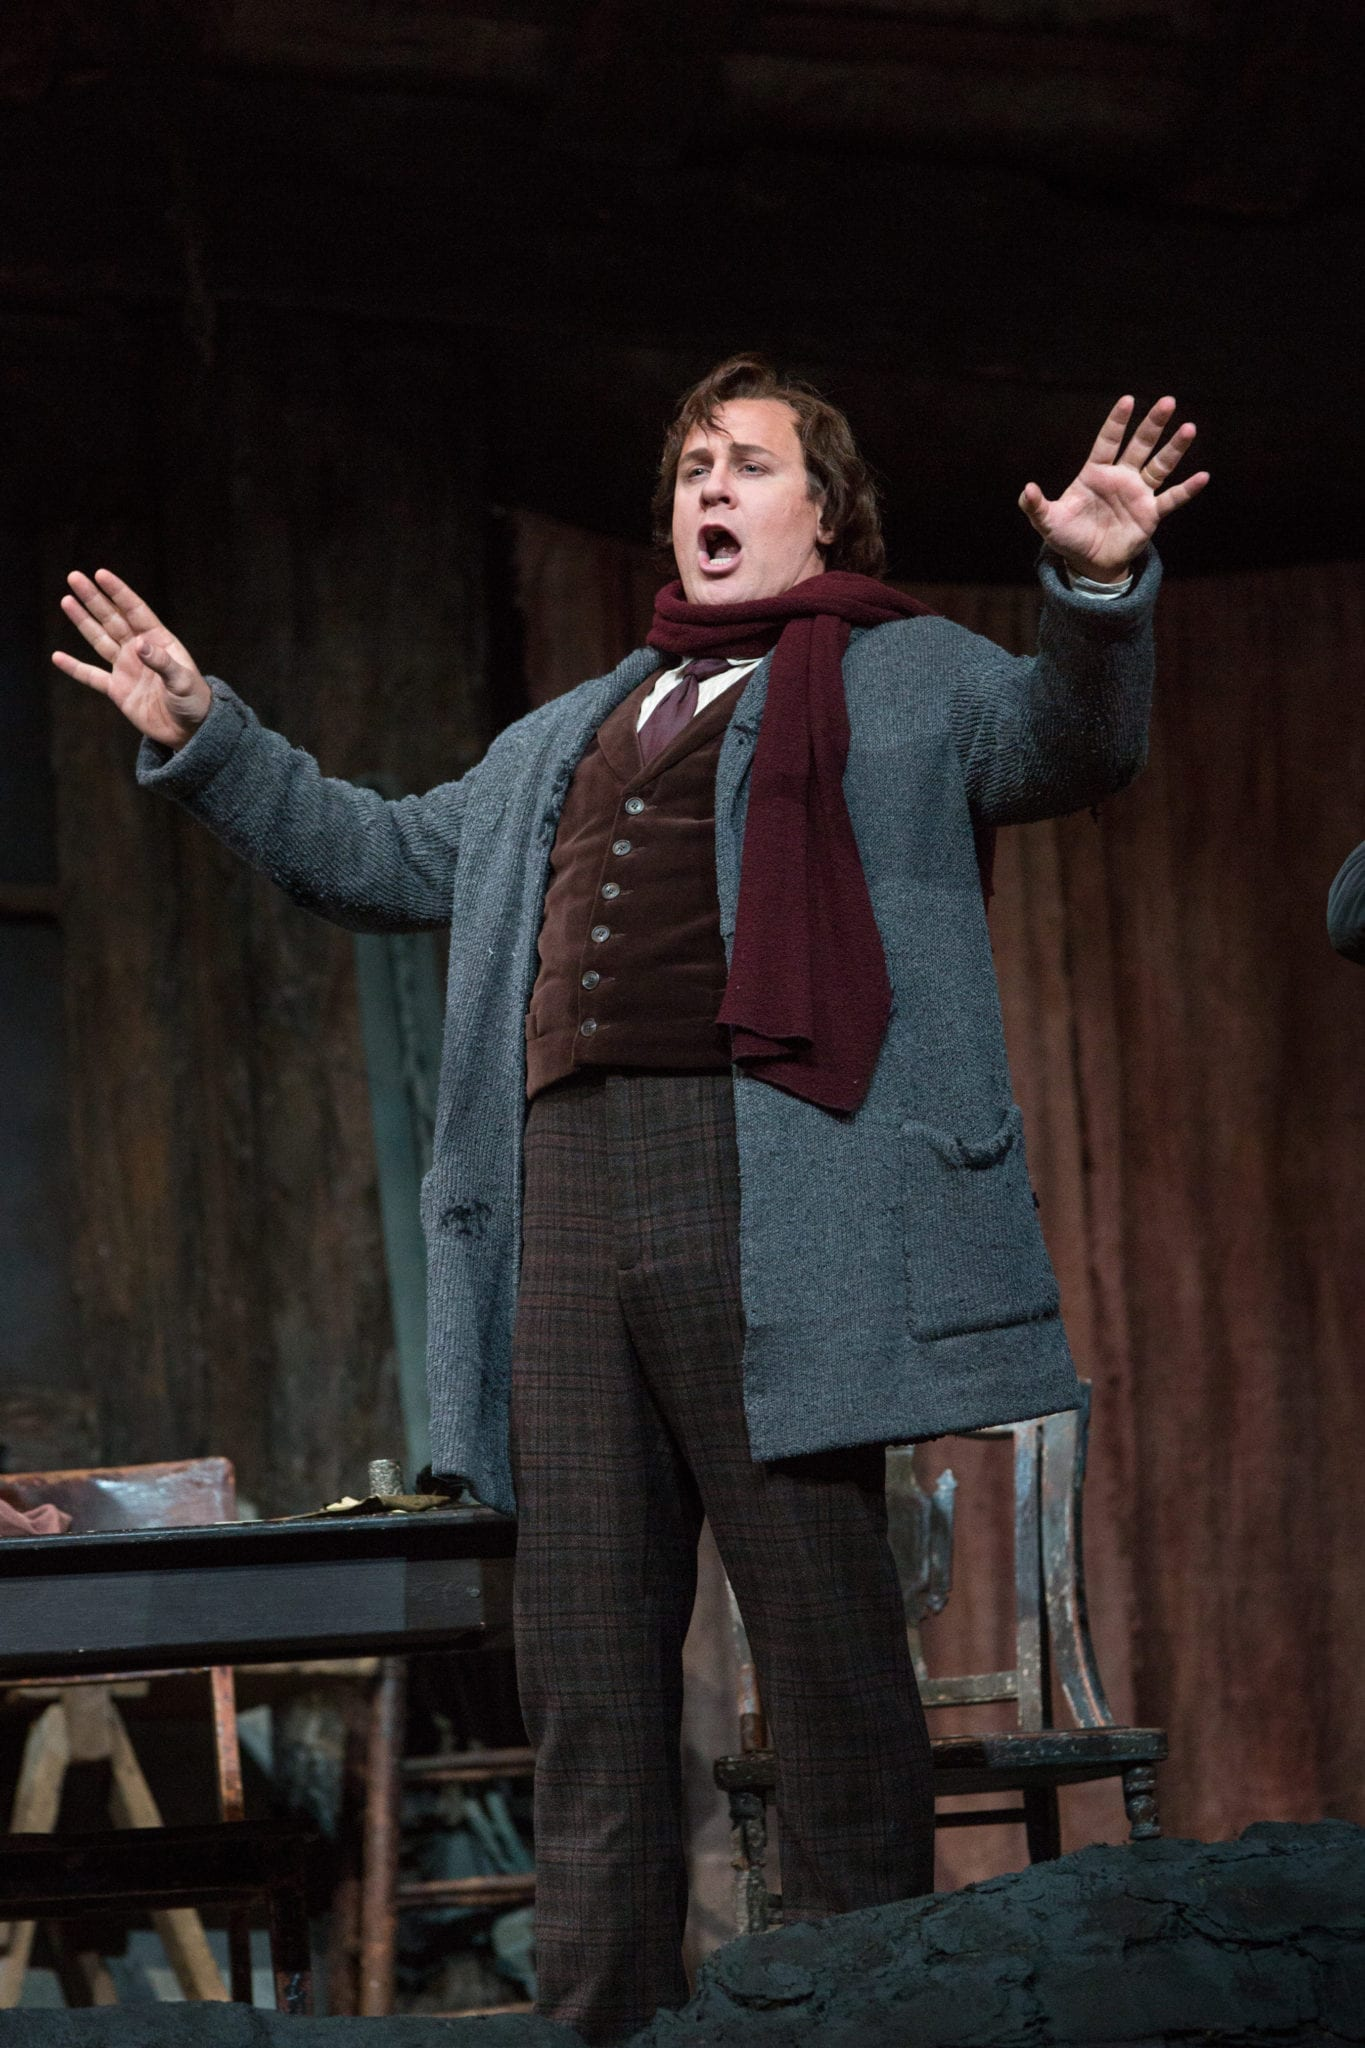 Lucas Meachem as Marcello in La Boheme at the Metropolitan Opera